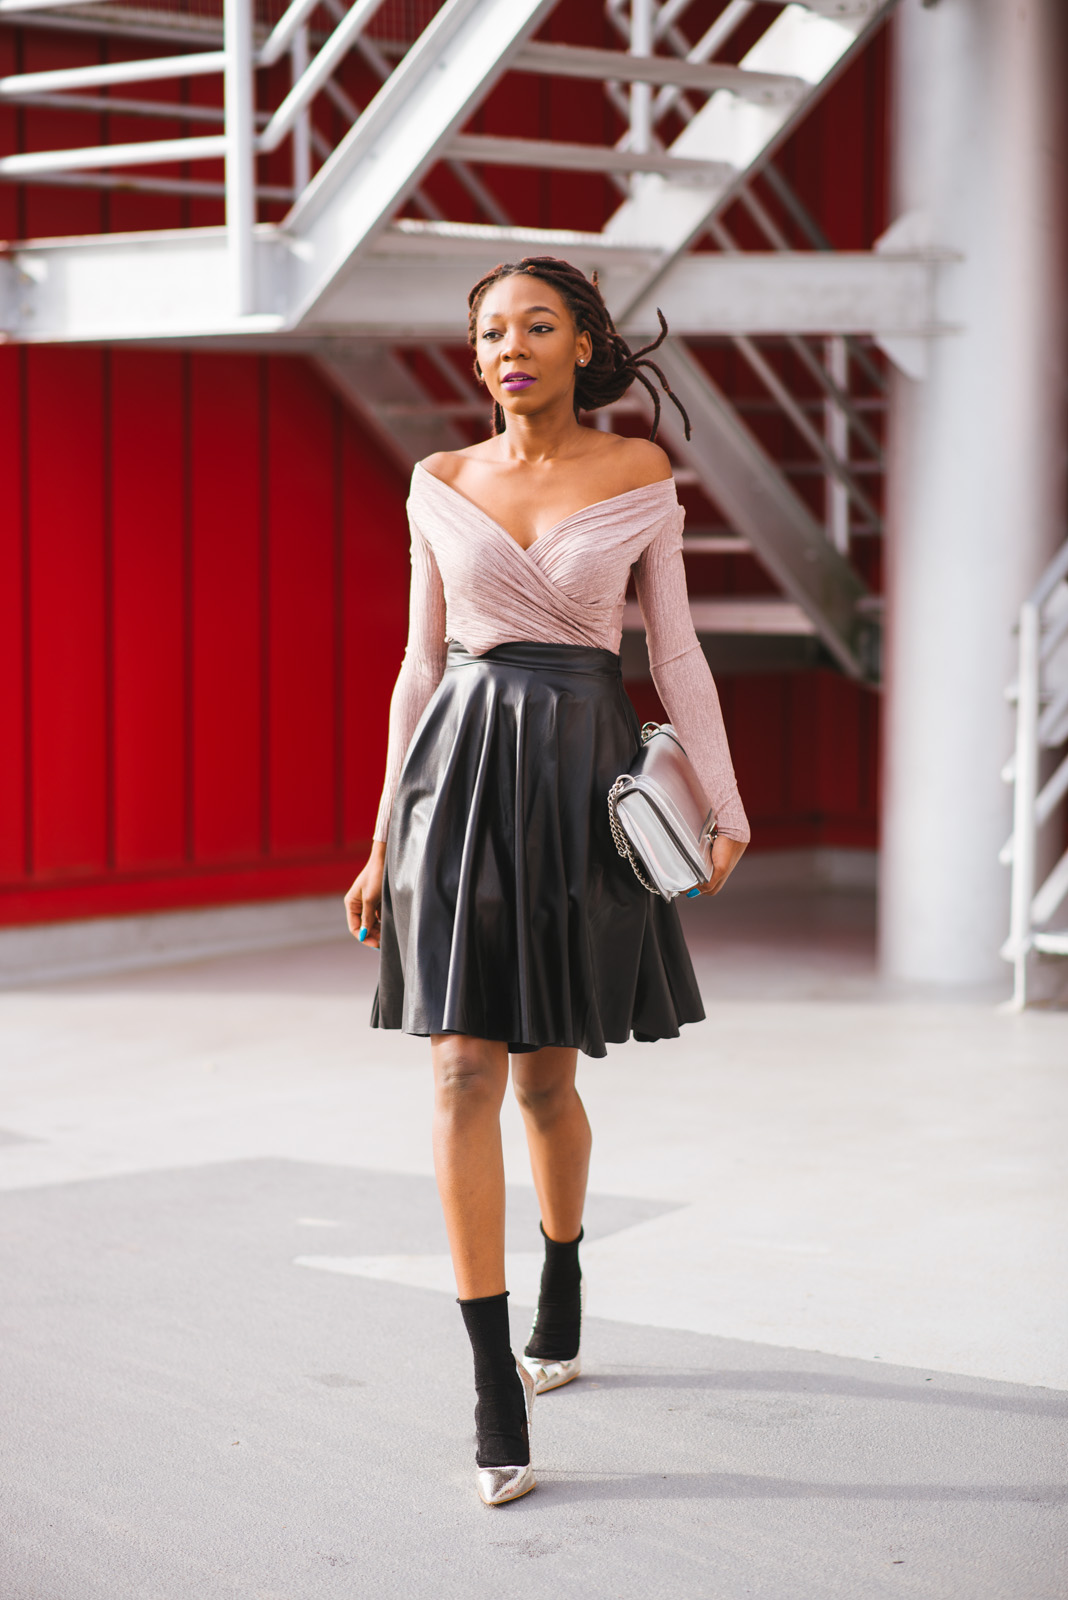 Leather outfits, pastels, skirts